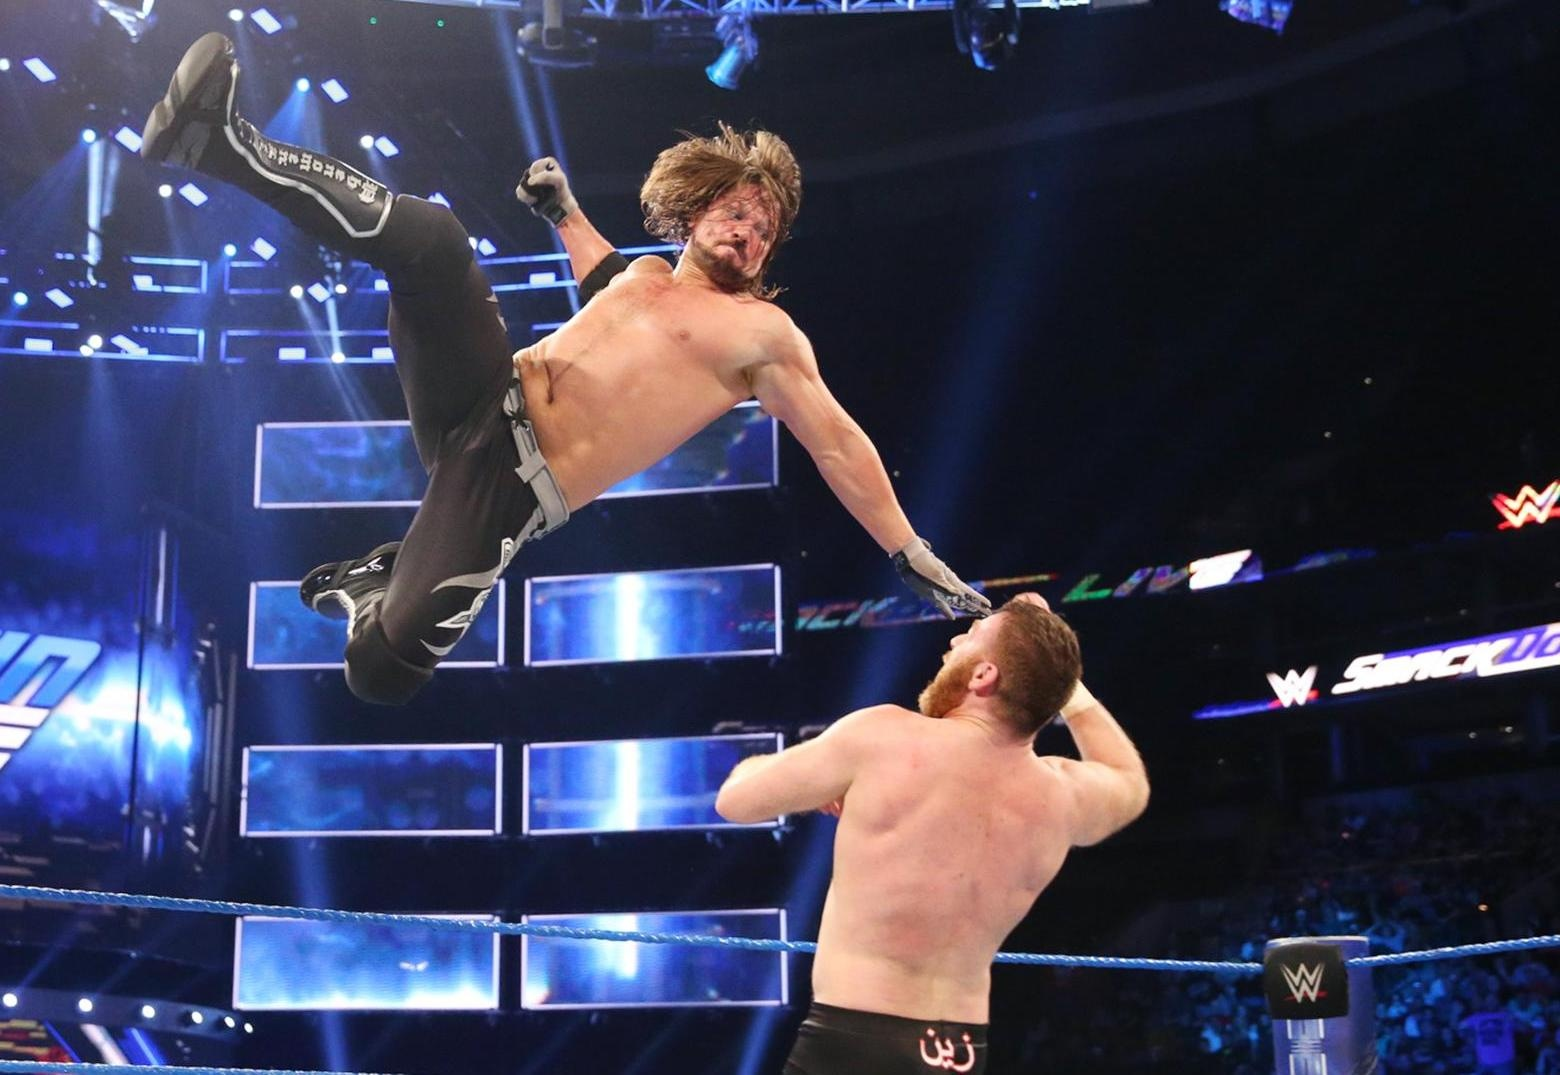 WWE SmackDown LIVE results, April 11, 2017 عرض مصارعة مترجم